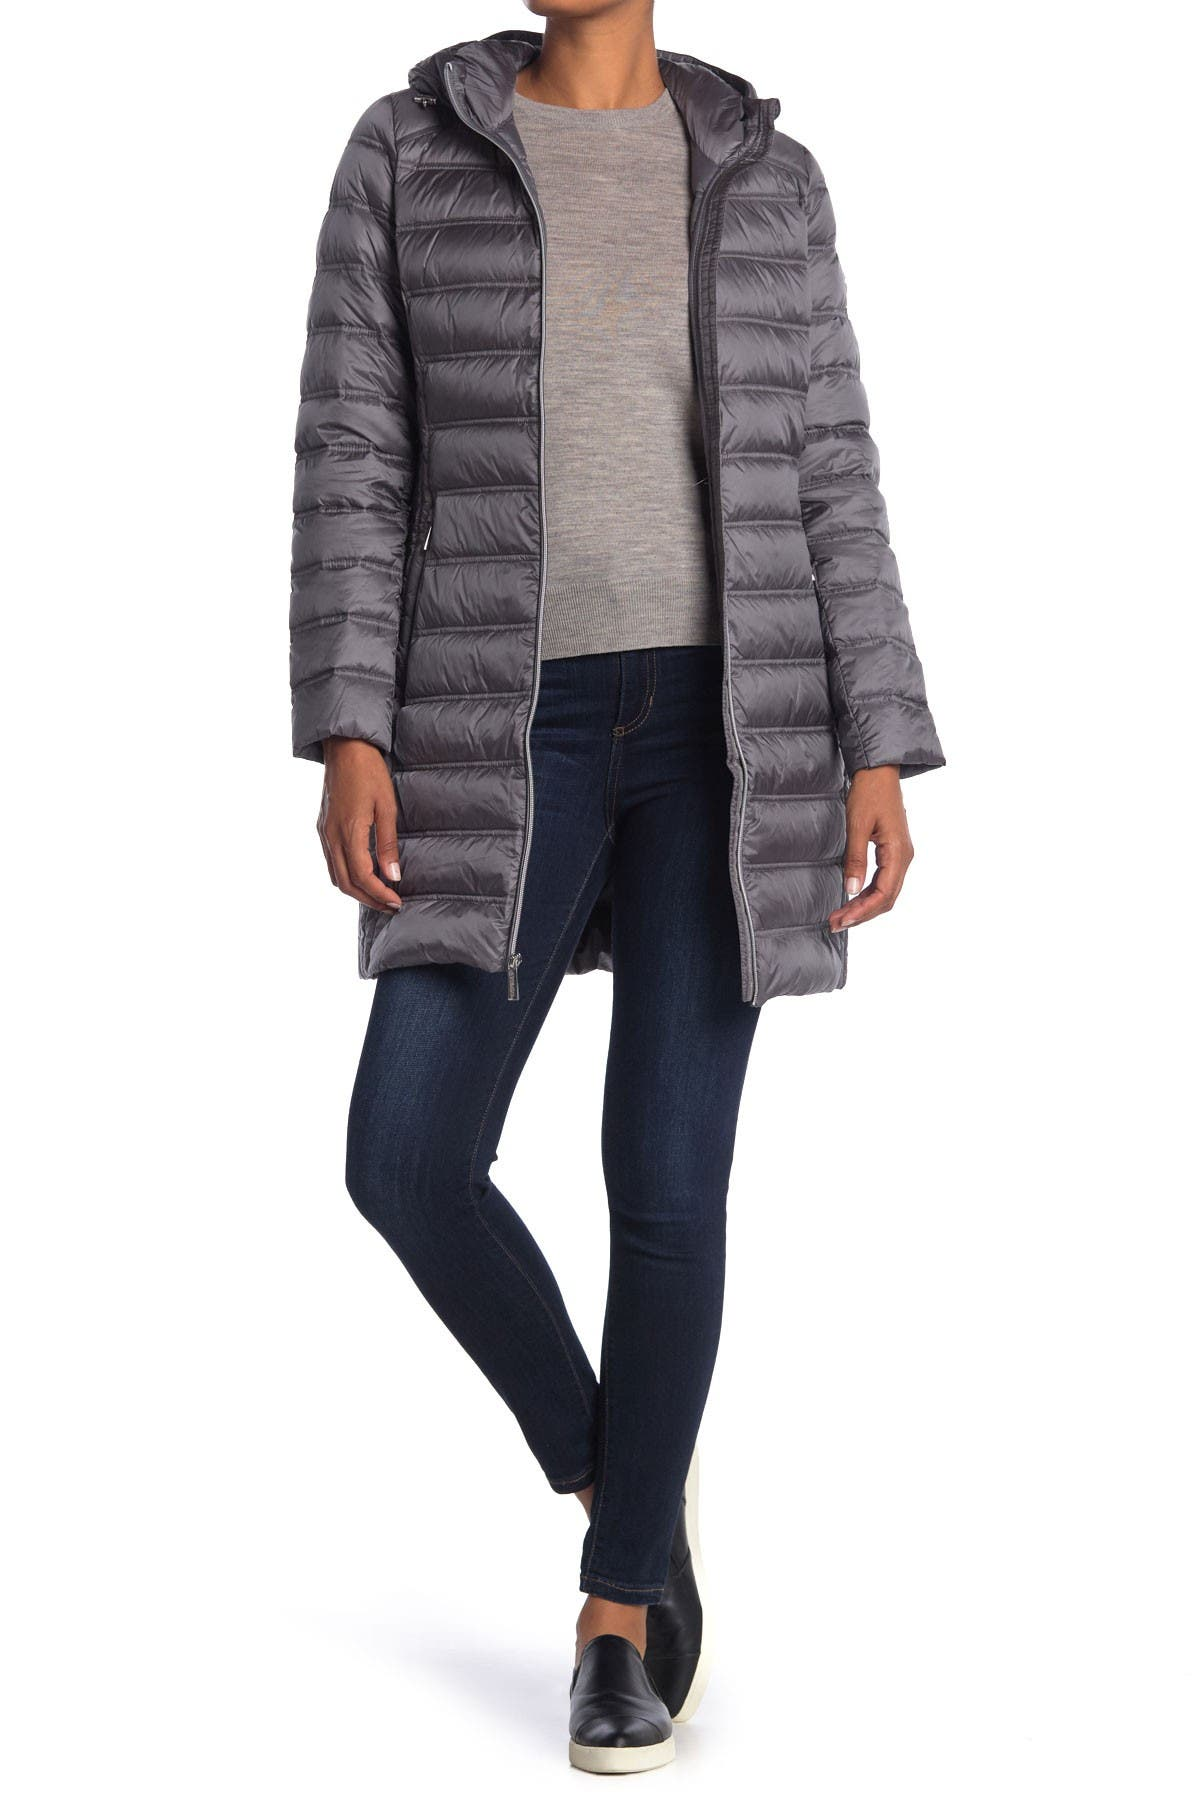 Image of MICHAEL Michael Kors Packable Puffer Jacket